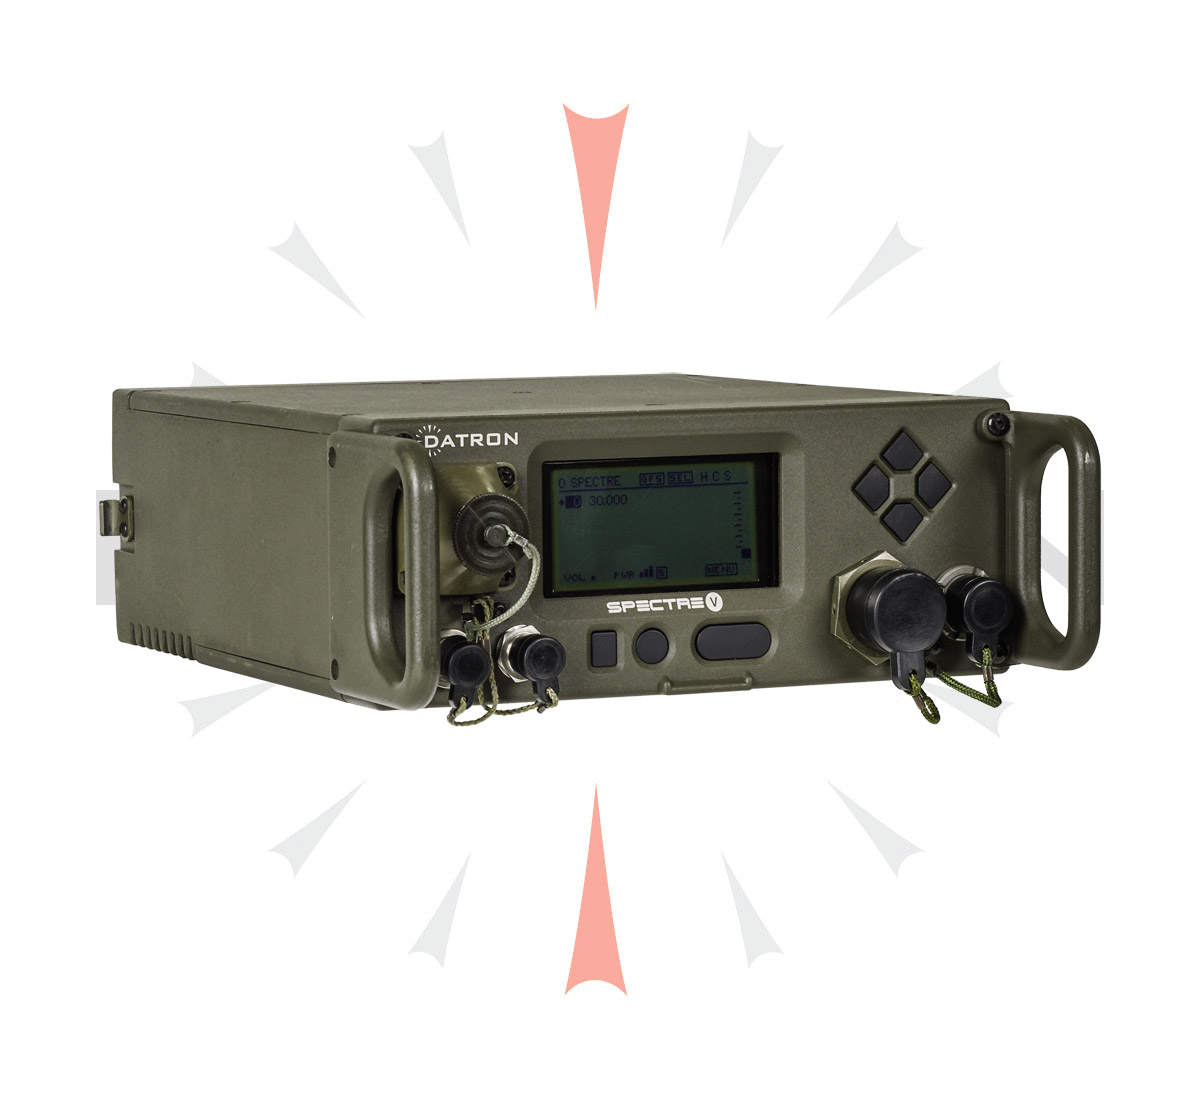 FEATURES - • 30 to 88 MHz• 100 programmable memory channels• Rugged (MIL-STD-810), immersible• Up to 10W (Manpack) & 75W (mobile or base station)• Internal antenna matching unit• Excellent co-site performance• Module level Built-In Test (BITE)• Embedded ECCM, COMSEC & GPS functions